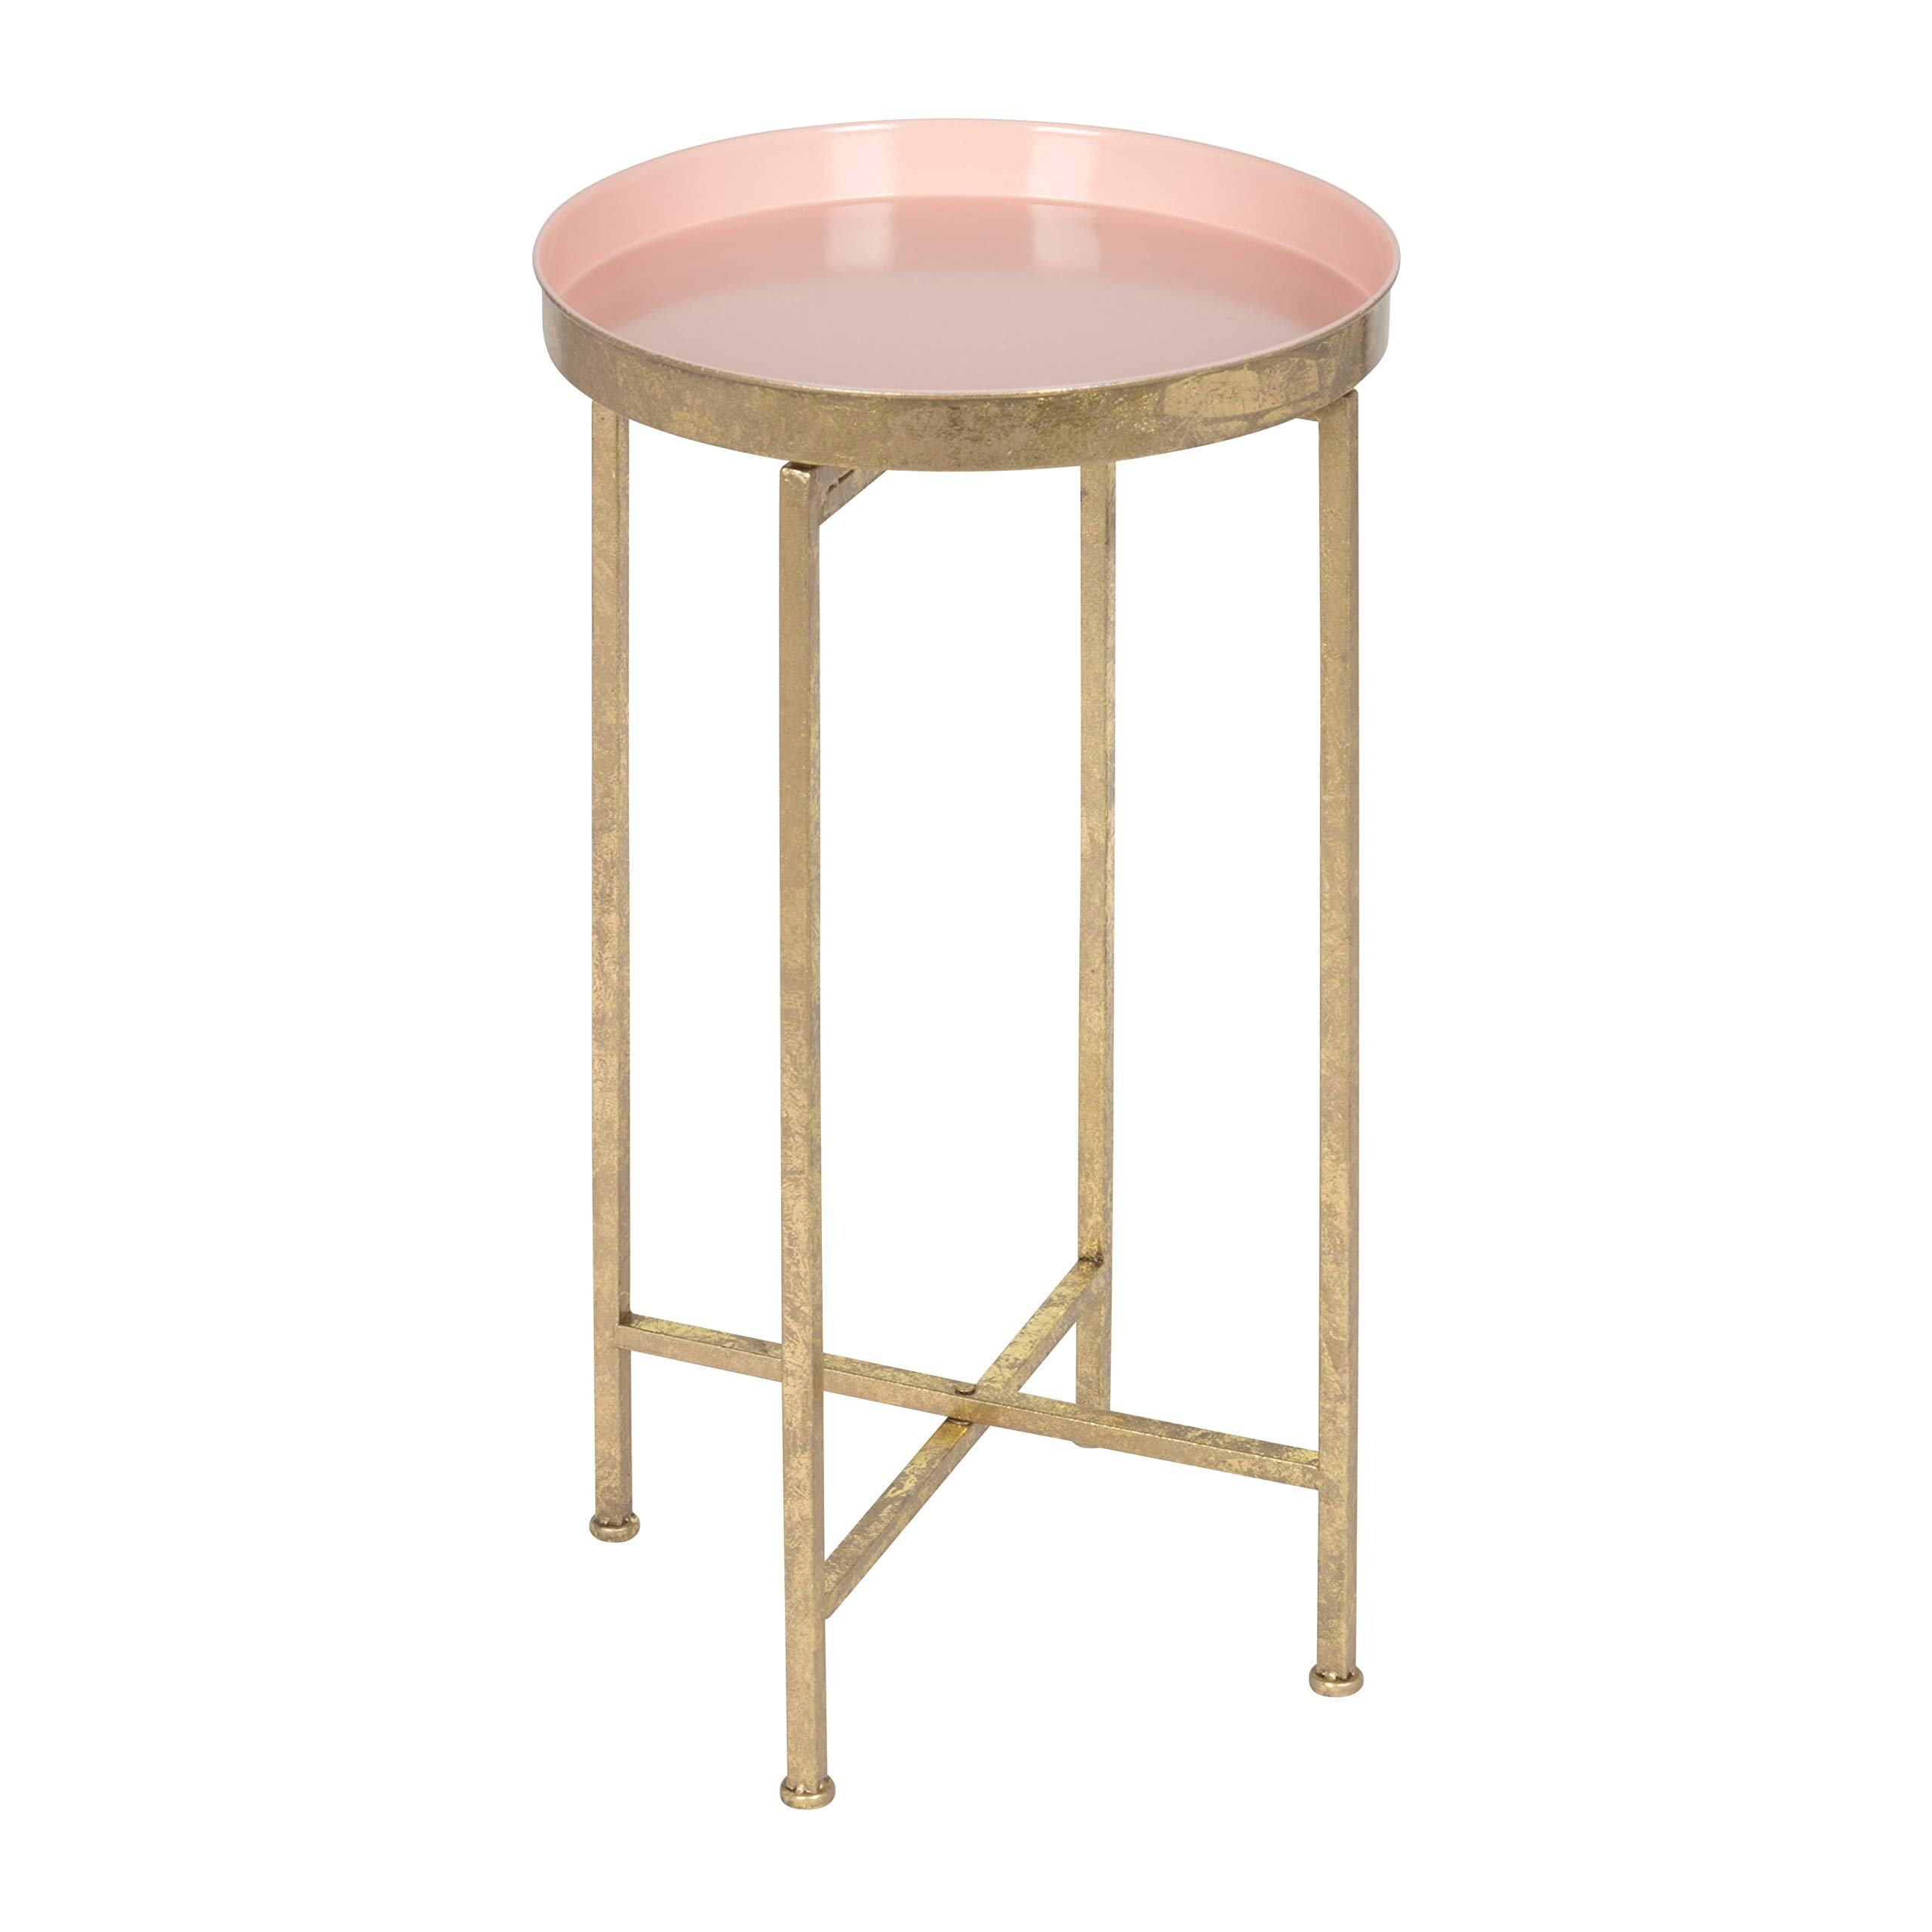 Kate and Laurel 212374 Celia Round Metal Foldable Tray Accent Table, 14x14x25.75, Gold/Pink by Kate and Laurel